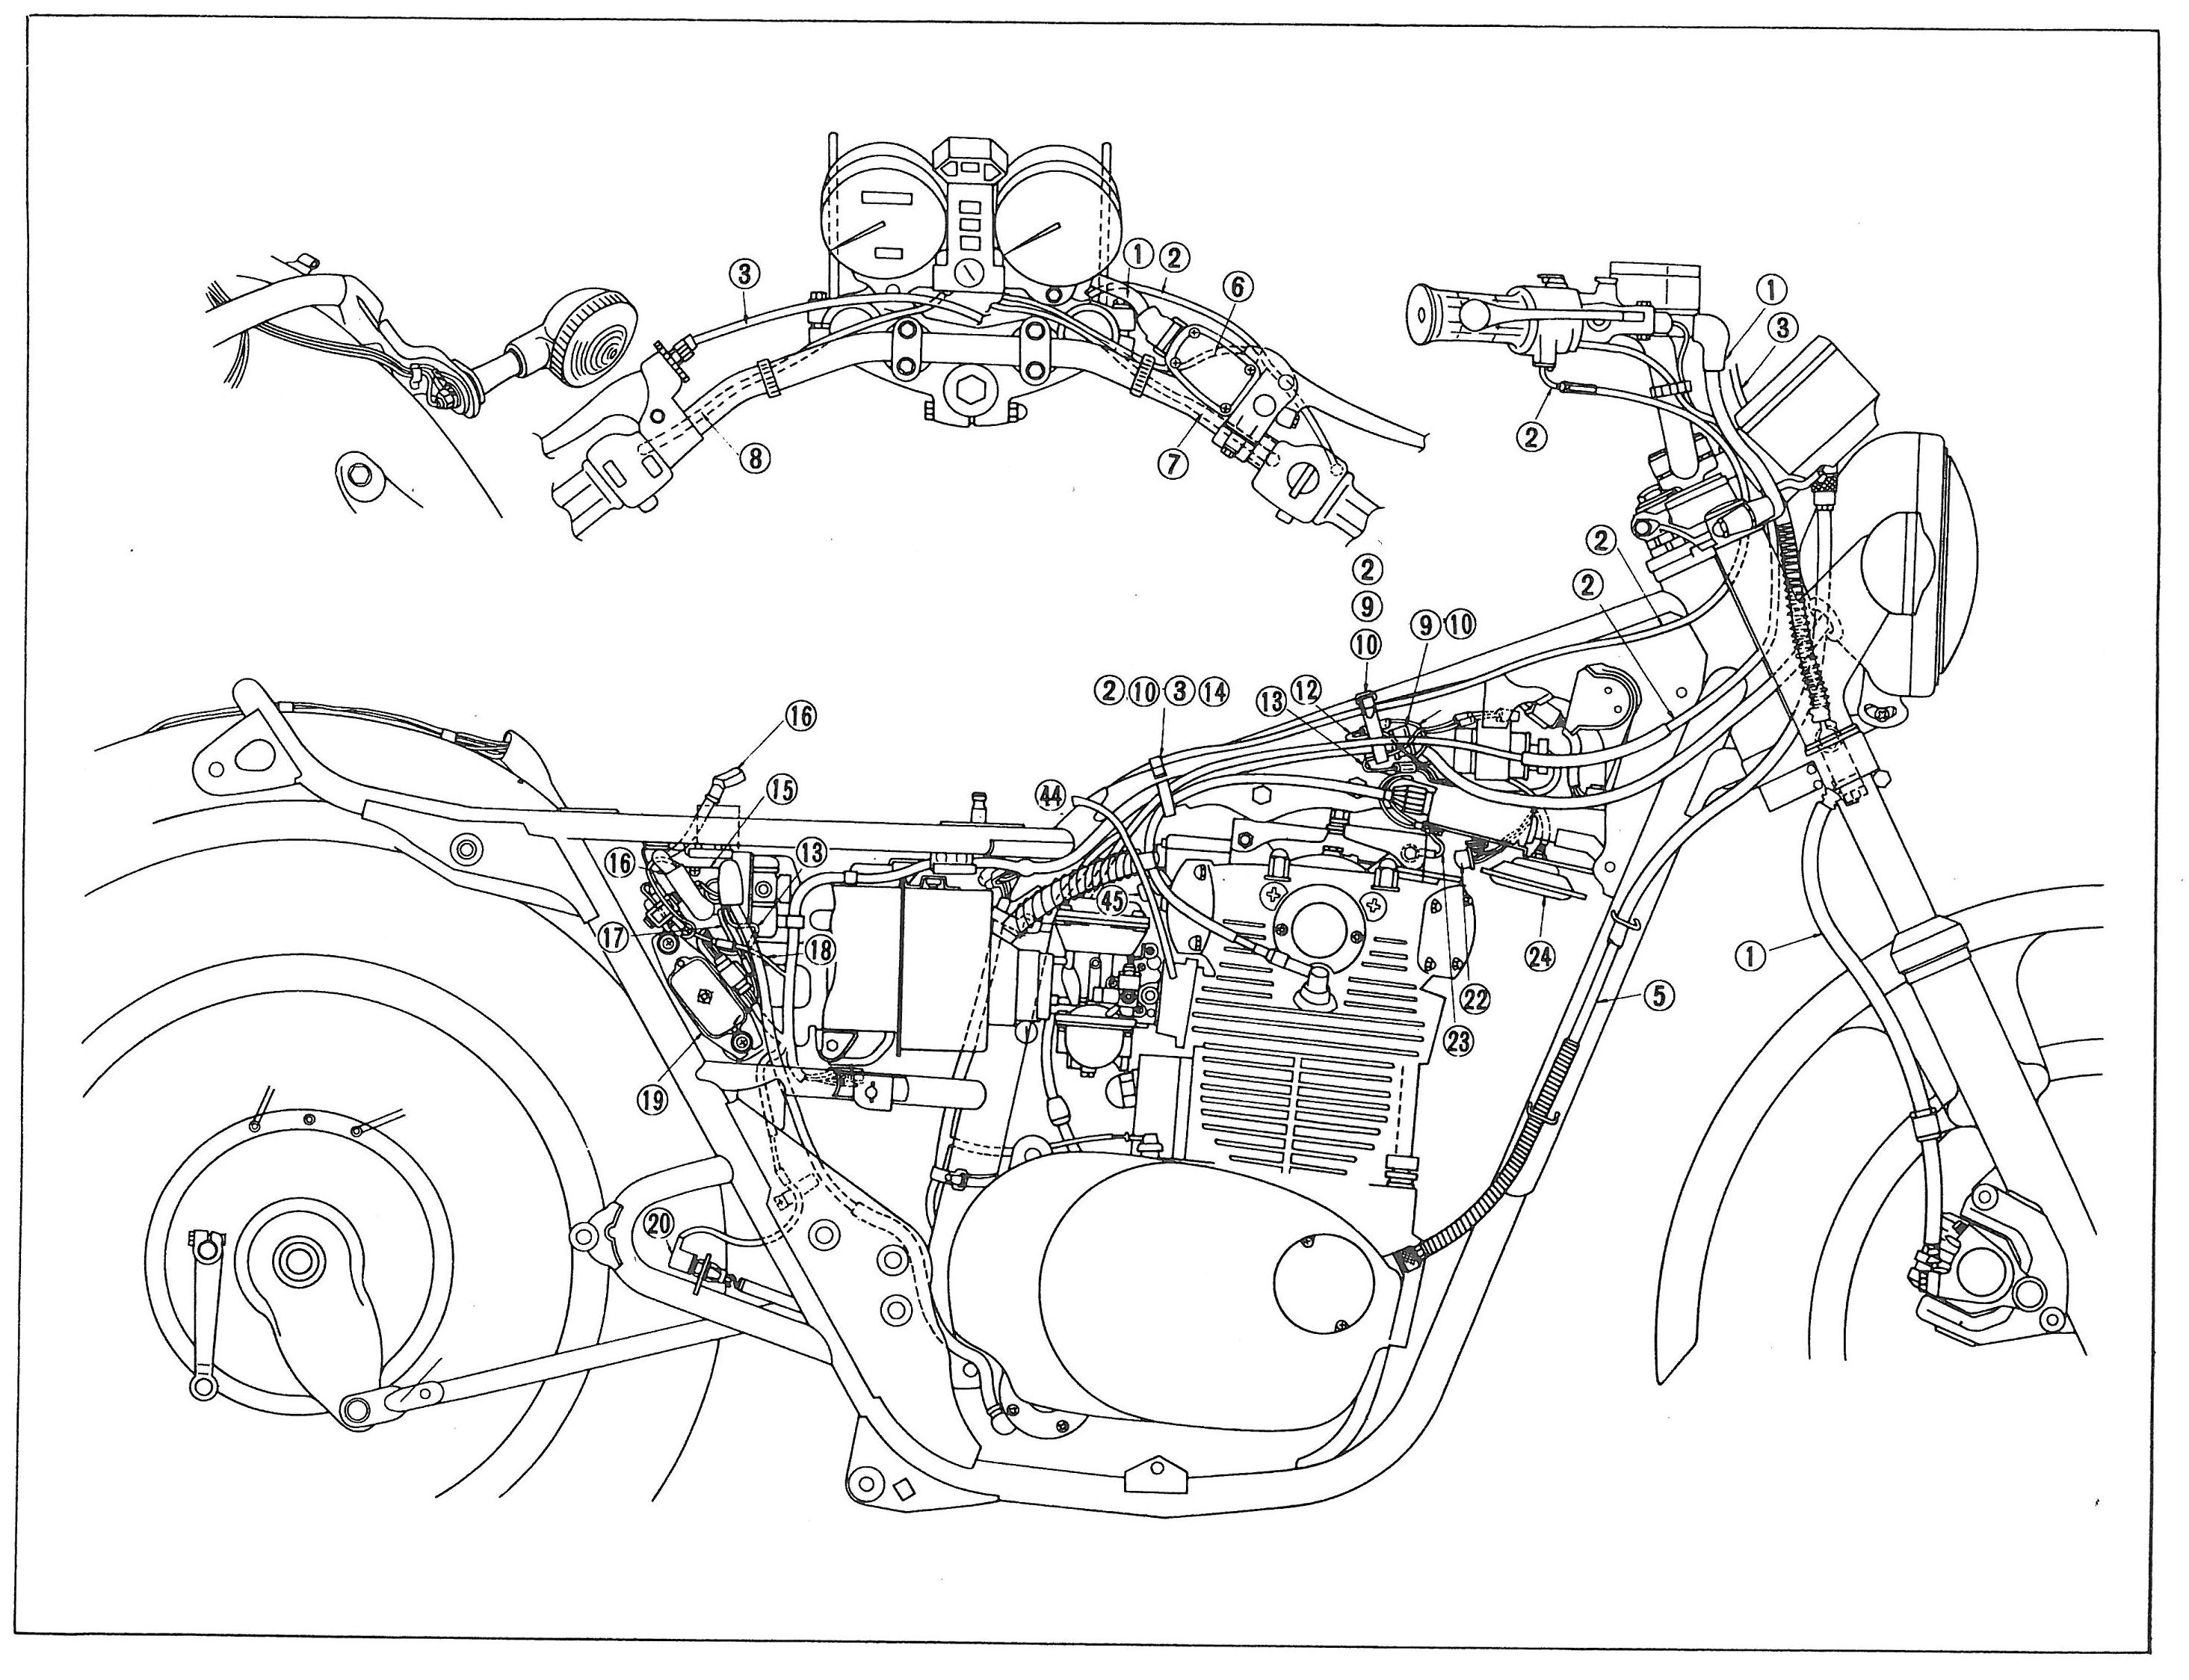 77 Xs650 Wiring Diagram, 77, Free Engine Image For User